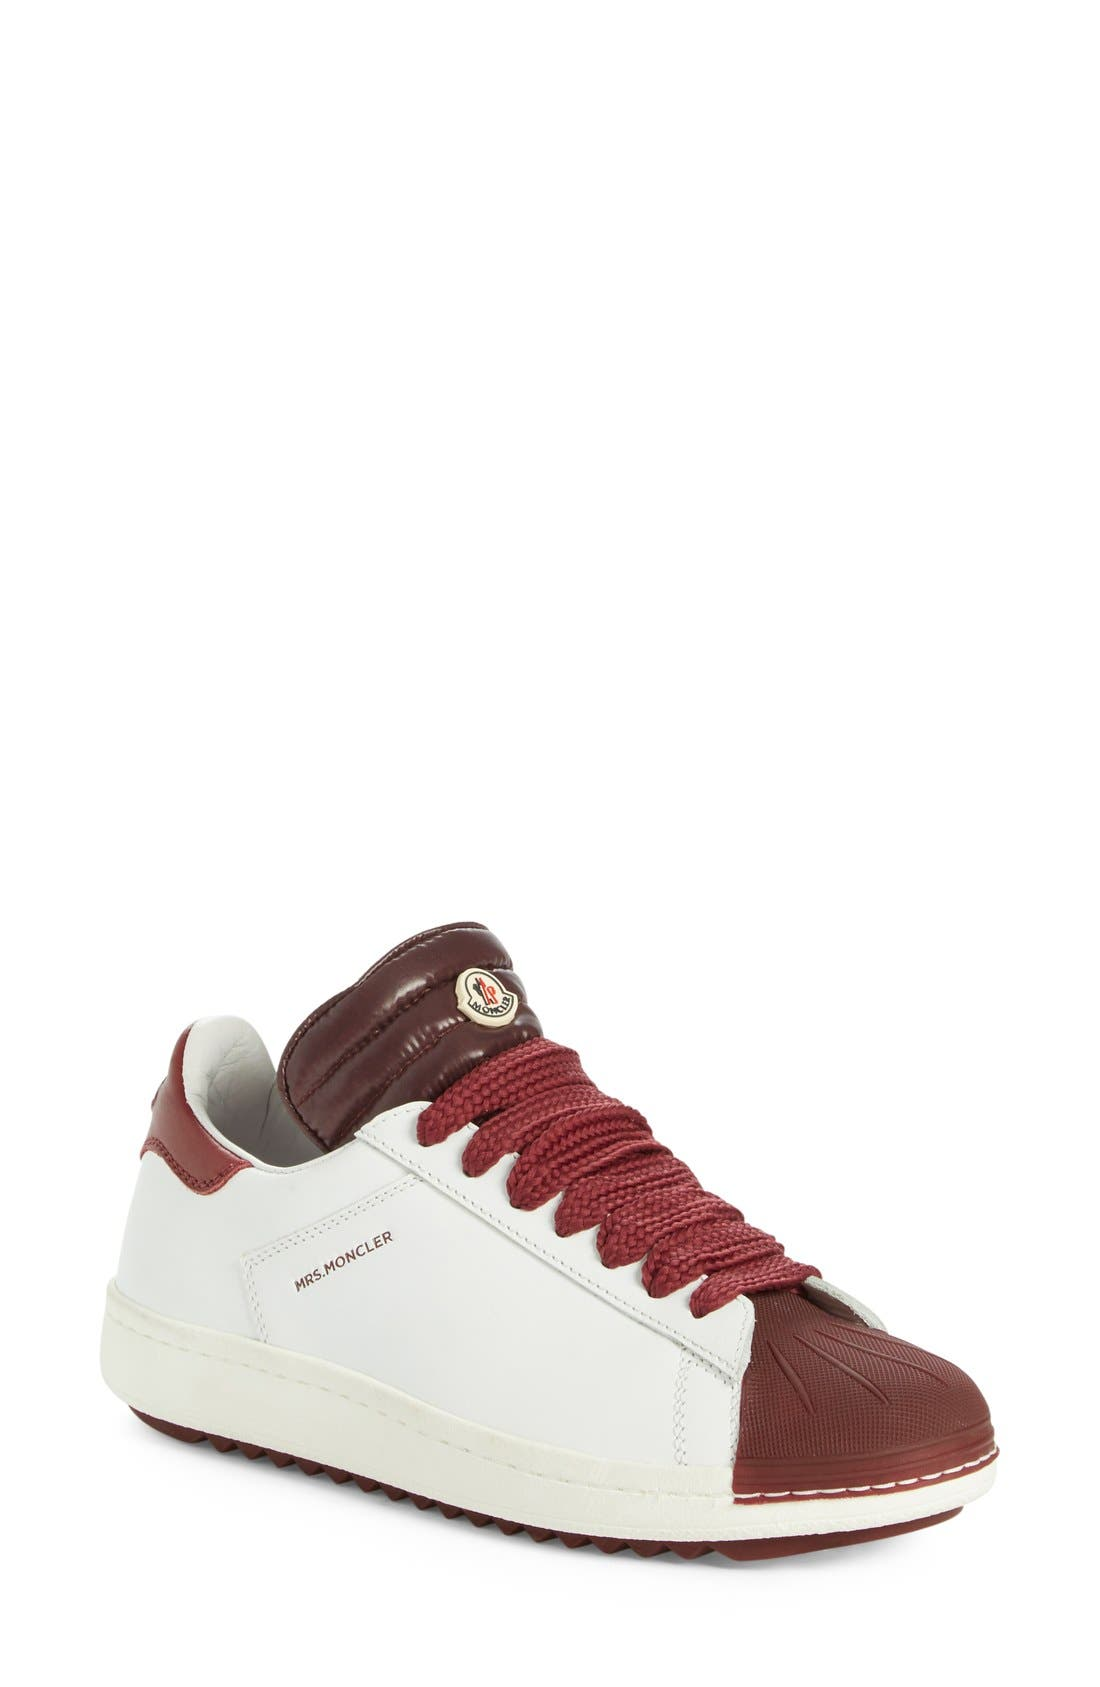 Alternate Image 1 Selected - Moncler 'Angeline Scarpa' Sneaker (Women)